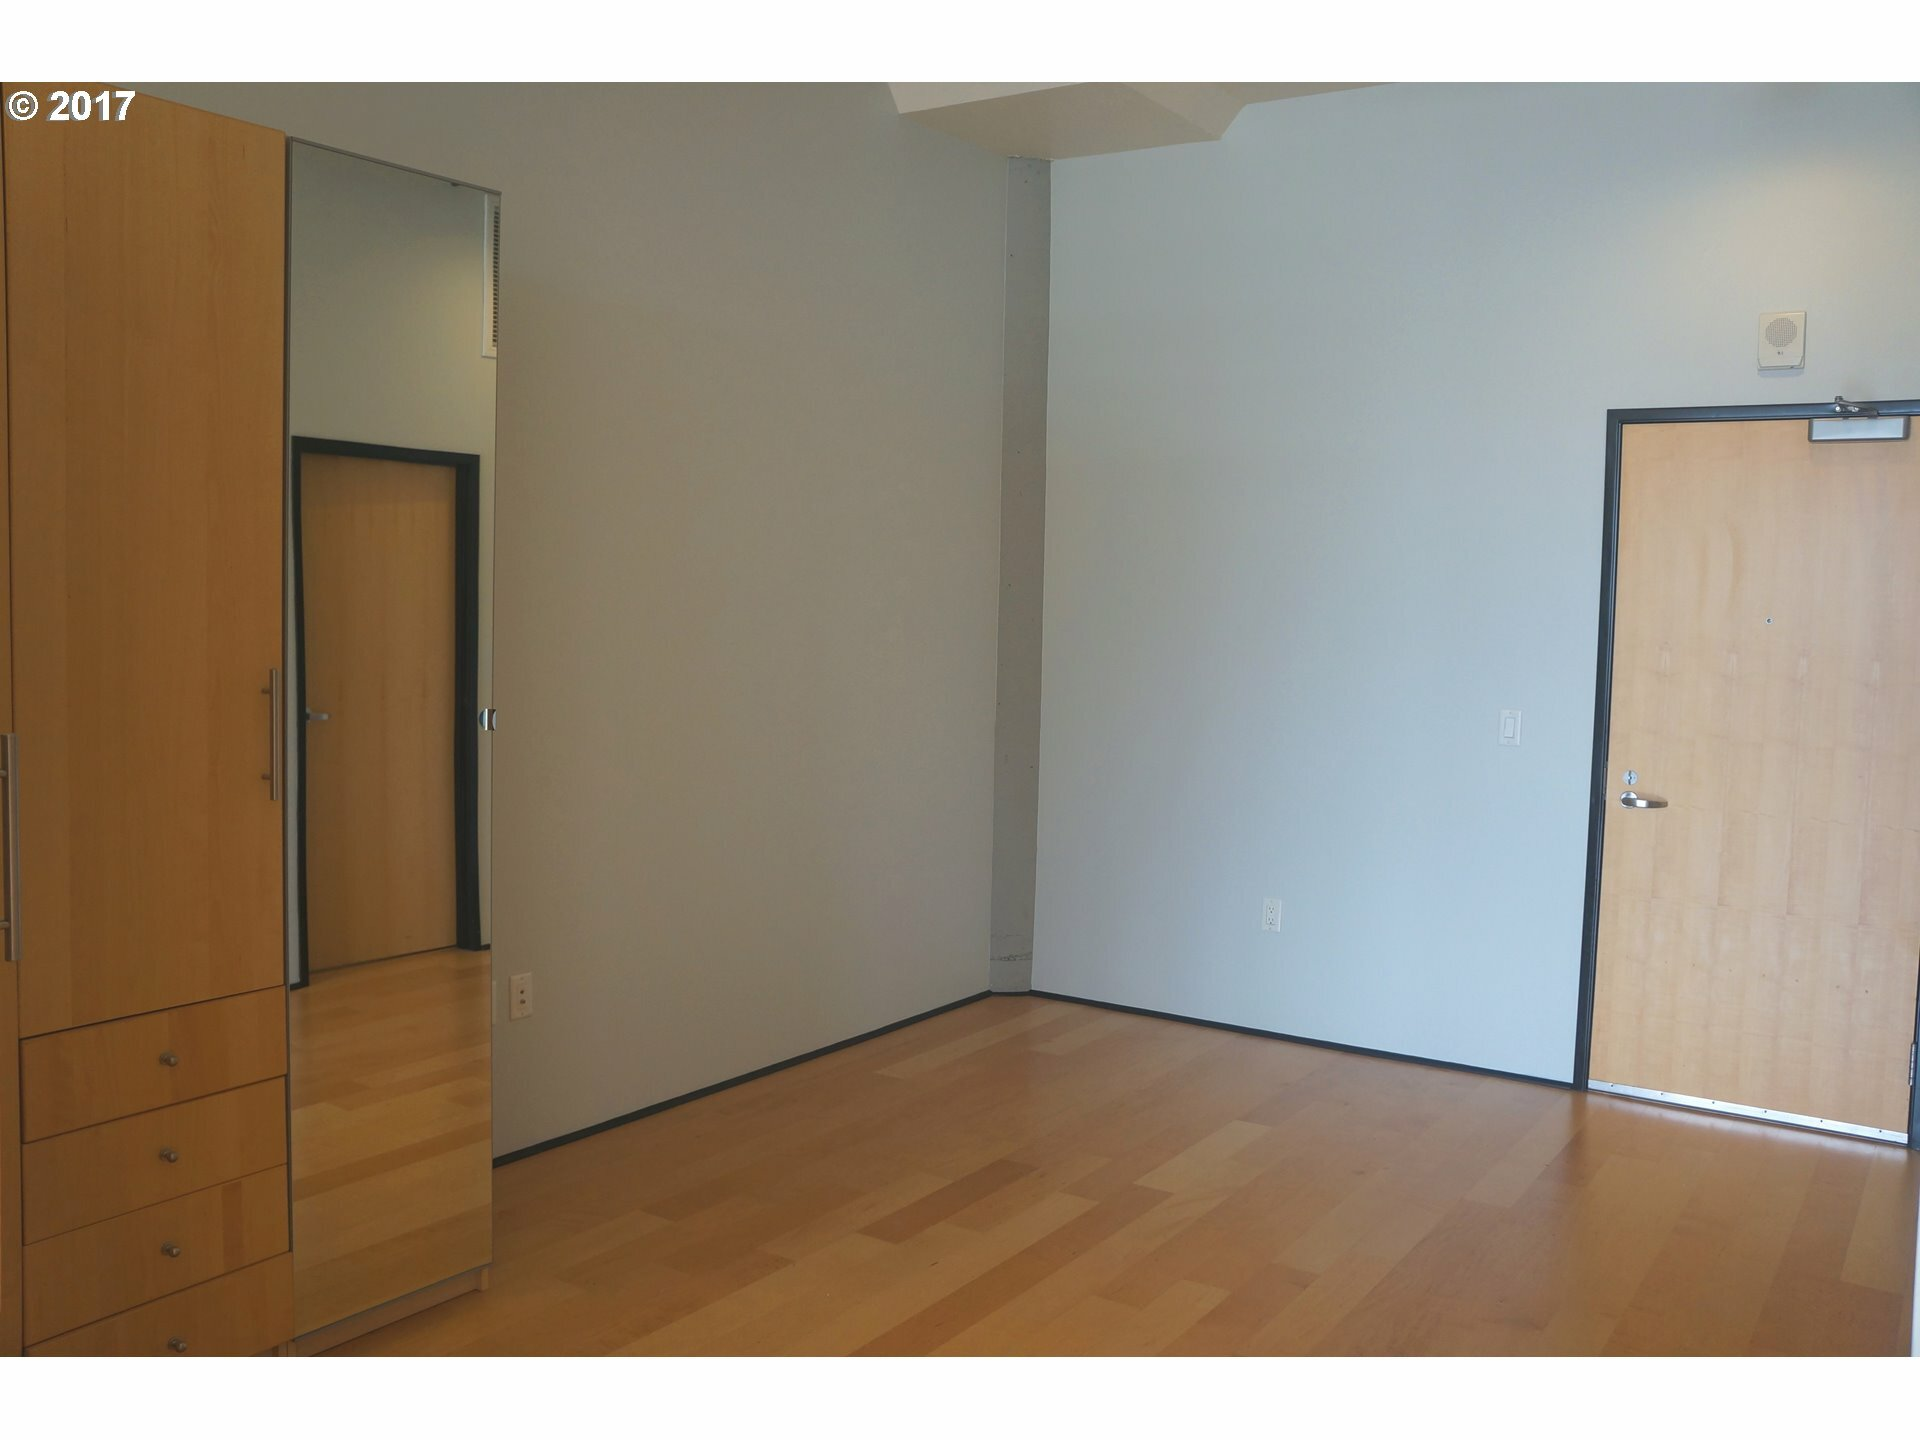 1400 Nw Irving St 614, Portland, OR - USA (photo 4)